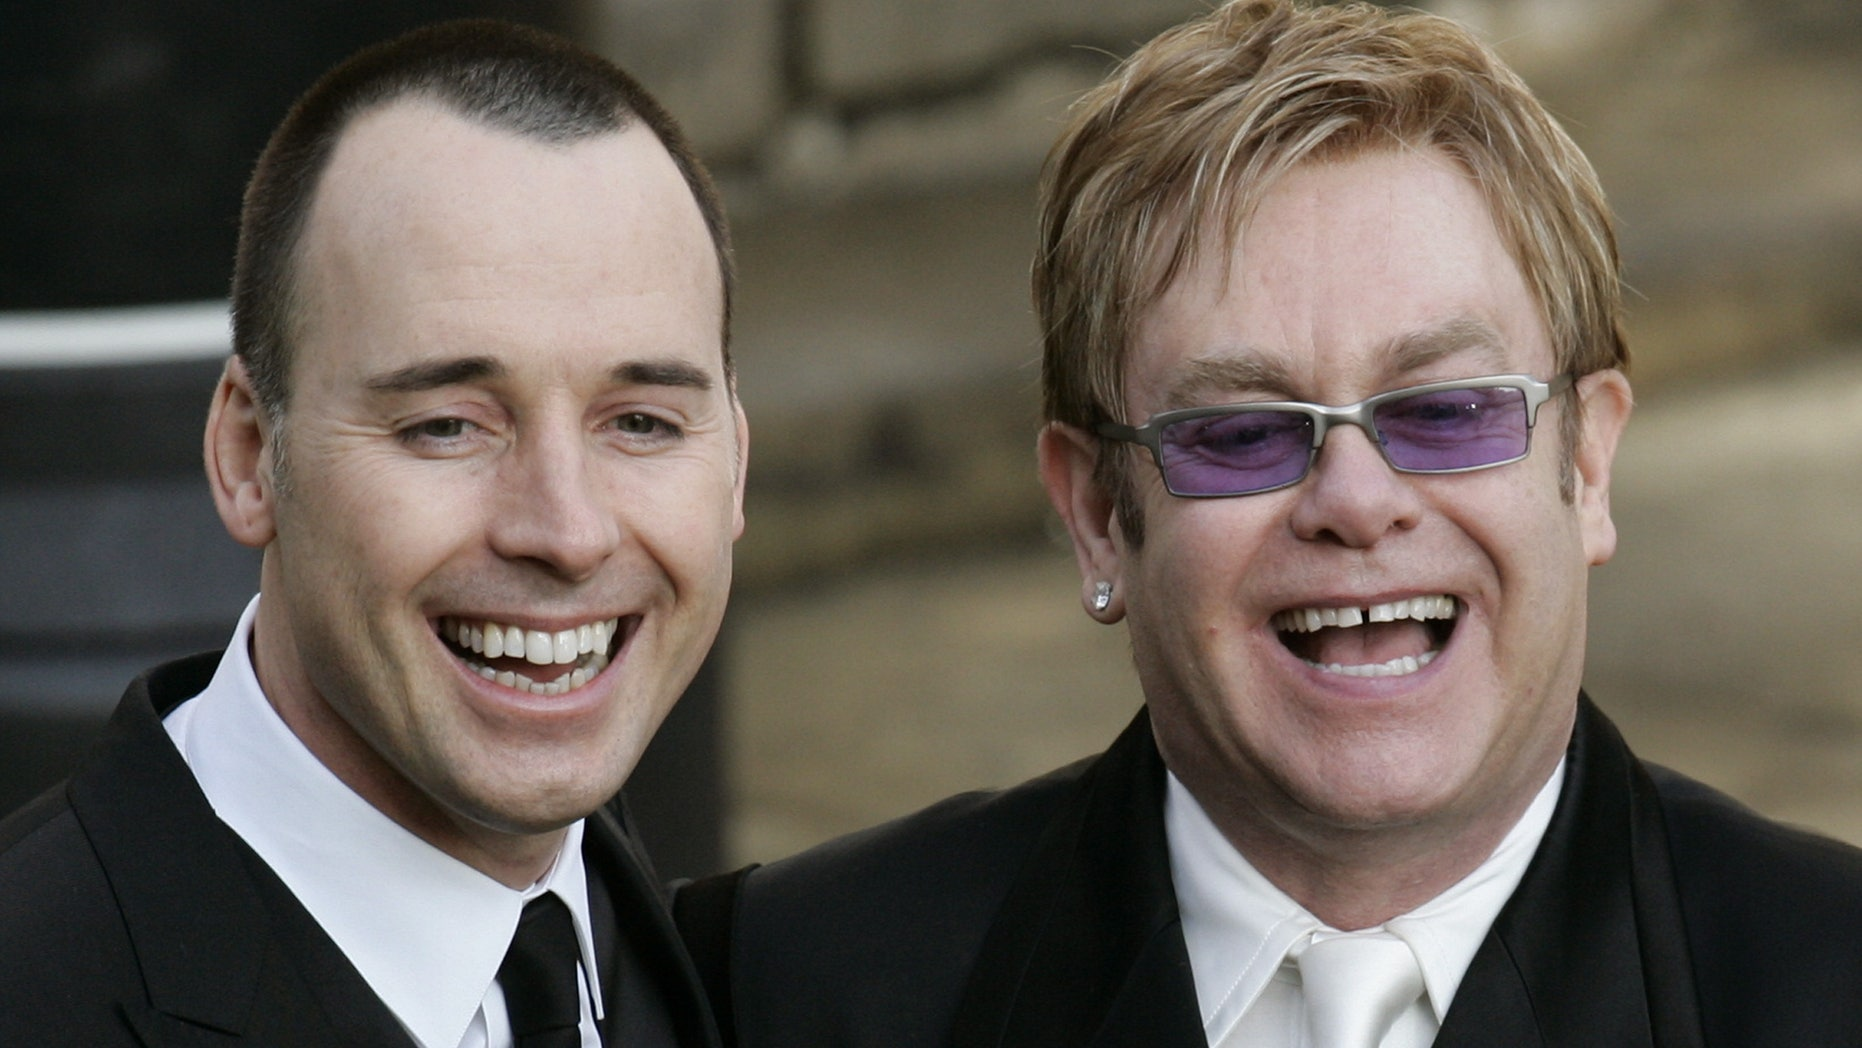 Dec. 21, 2005. Elton John, right, and his longtime partner David Furnish, after they had a civil ceremony at the Guildhall in Windsor, England.